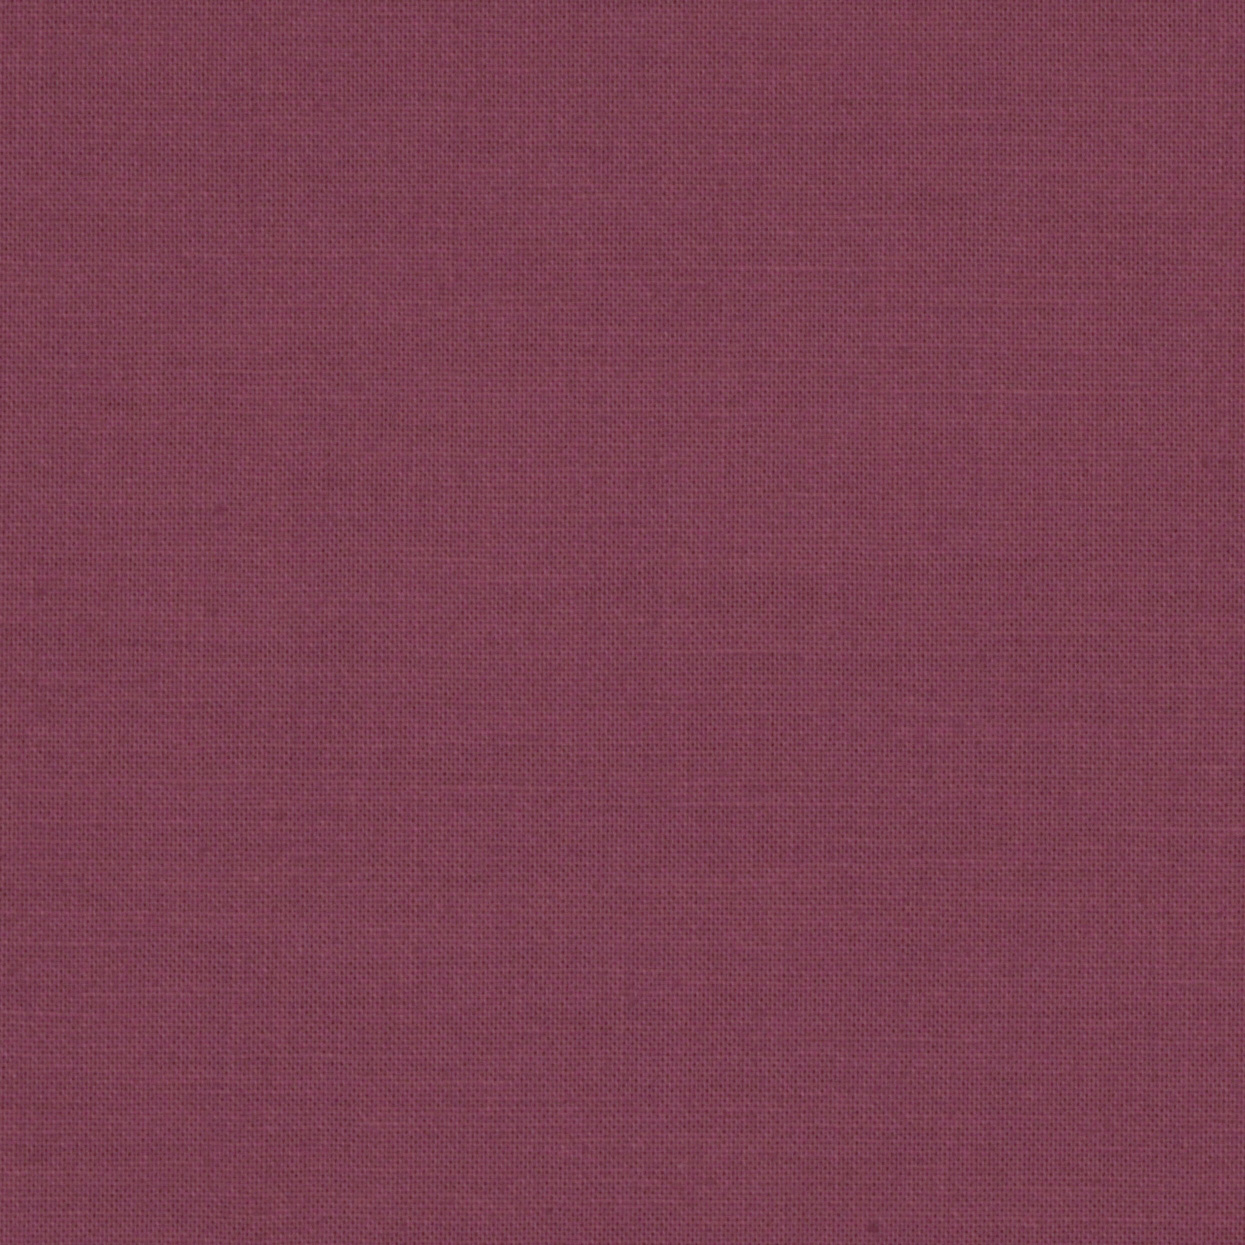 Kona Cotton Plum Fabric